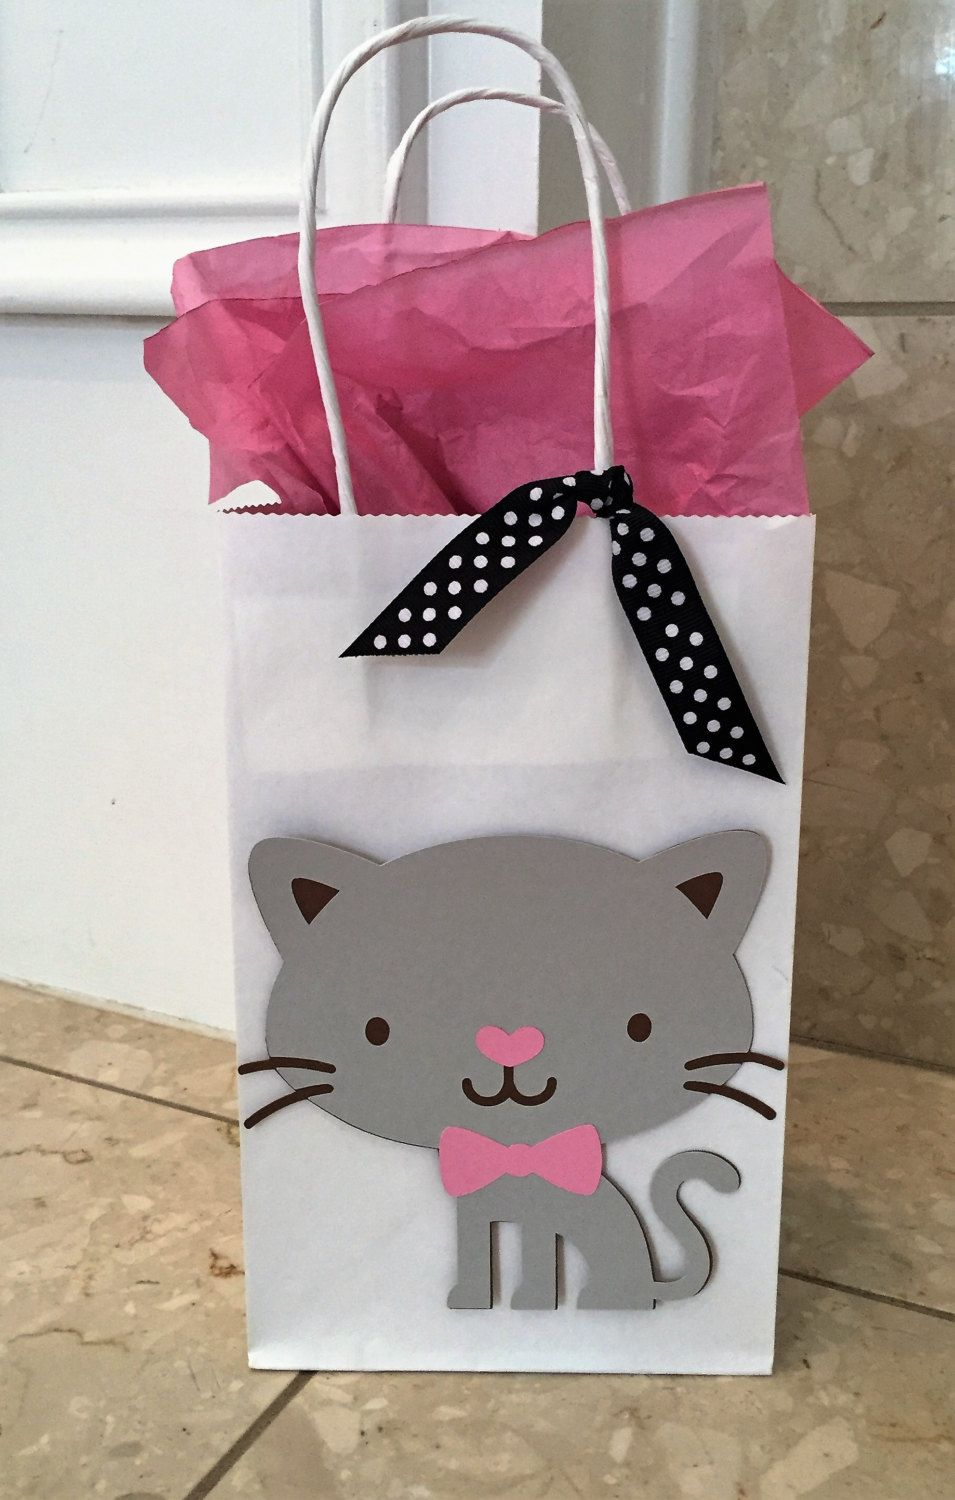 Kitty Cat Party Goodie Bags Treat Birthday Decorations By HappyPartyShoppe On Etsy